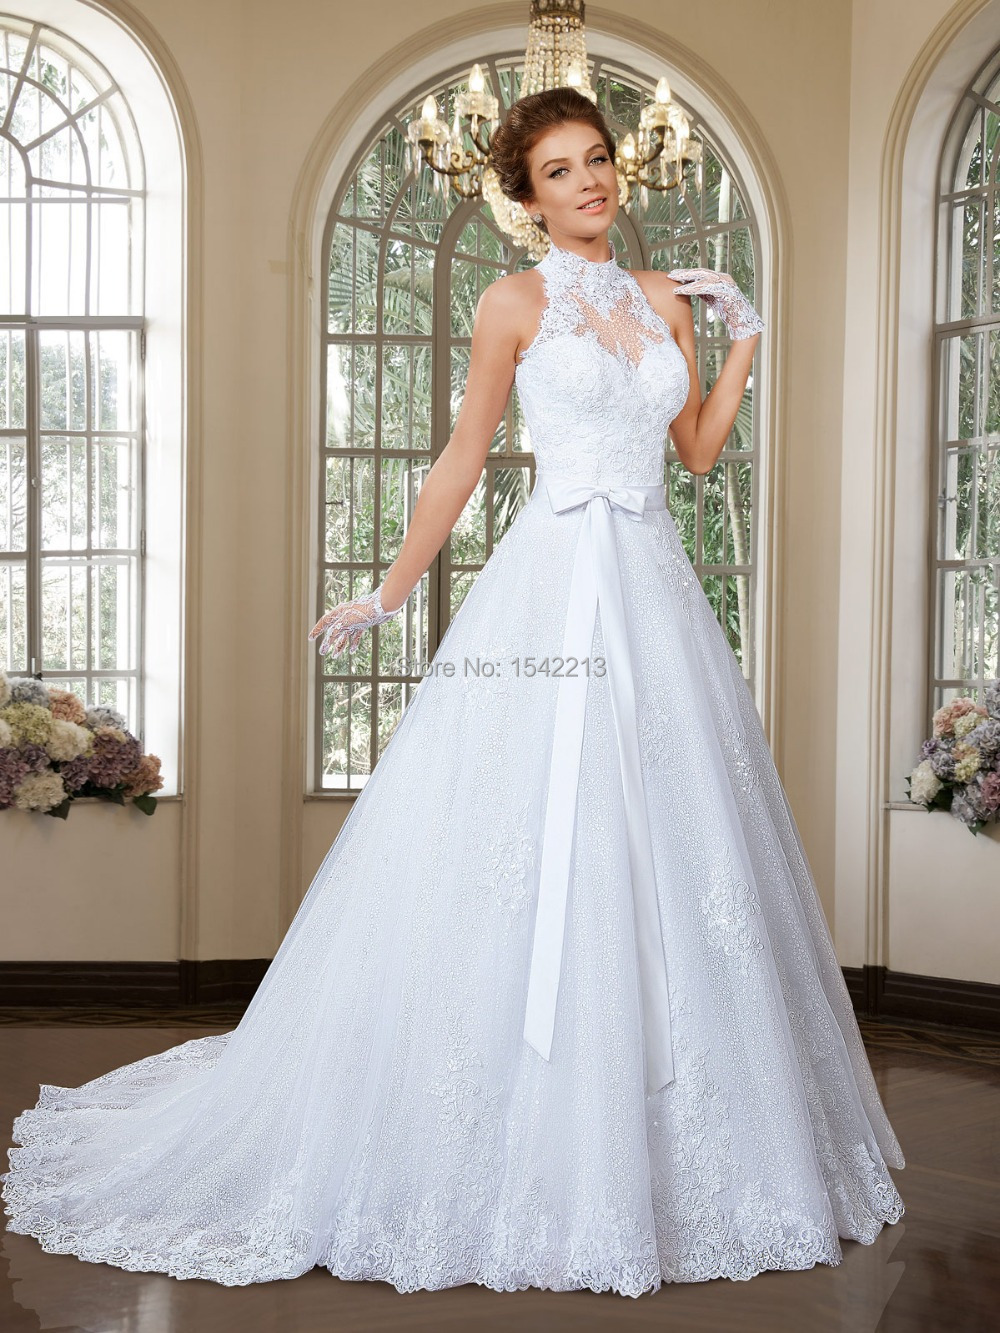 Two Styles Wedding Dresses High Neck Lace Organza Bridal Gown ...